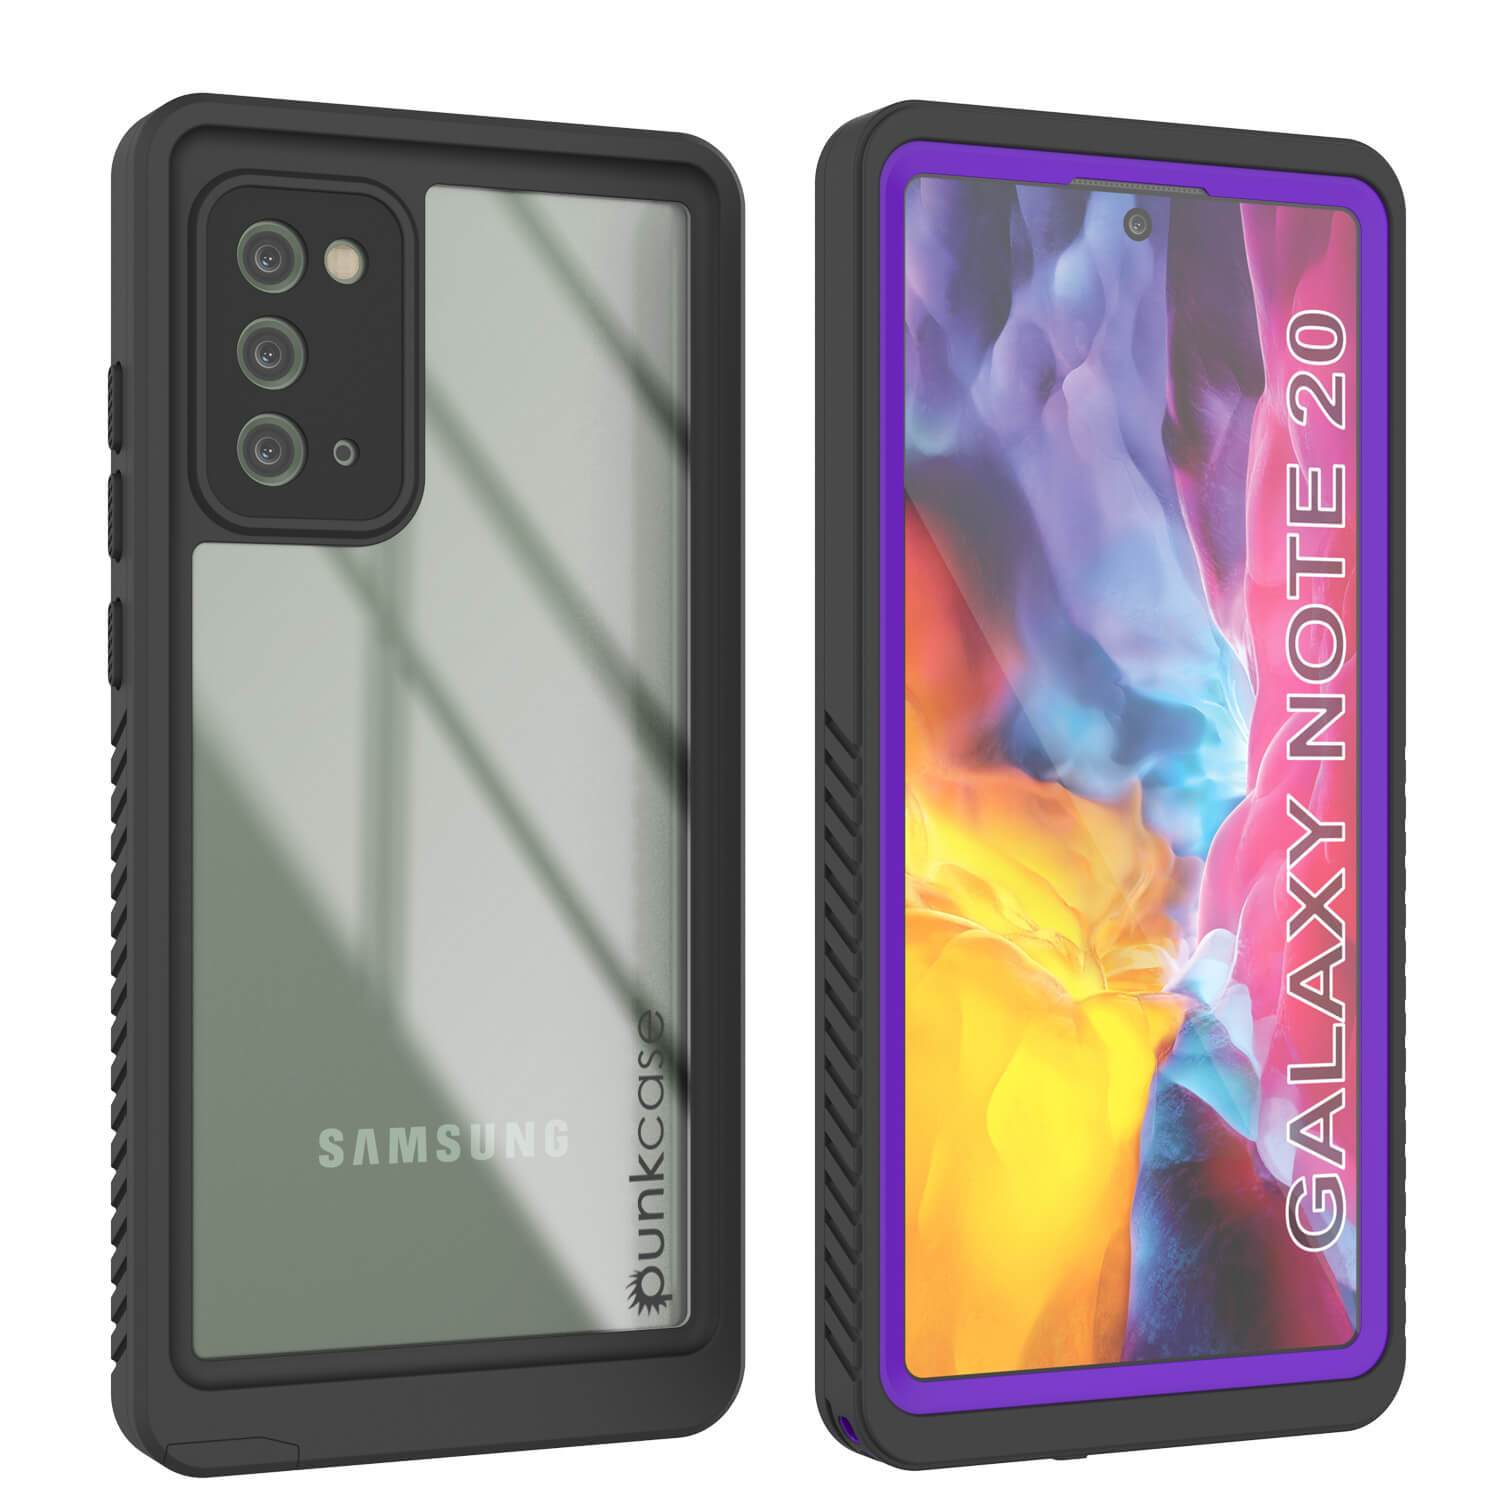 Galaxy Note 20 Case, Punkcase [Extreme Series] Armor Cover W/ Built In Screen Protector [Purple]